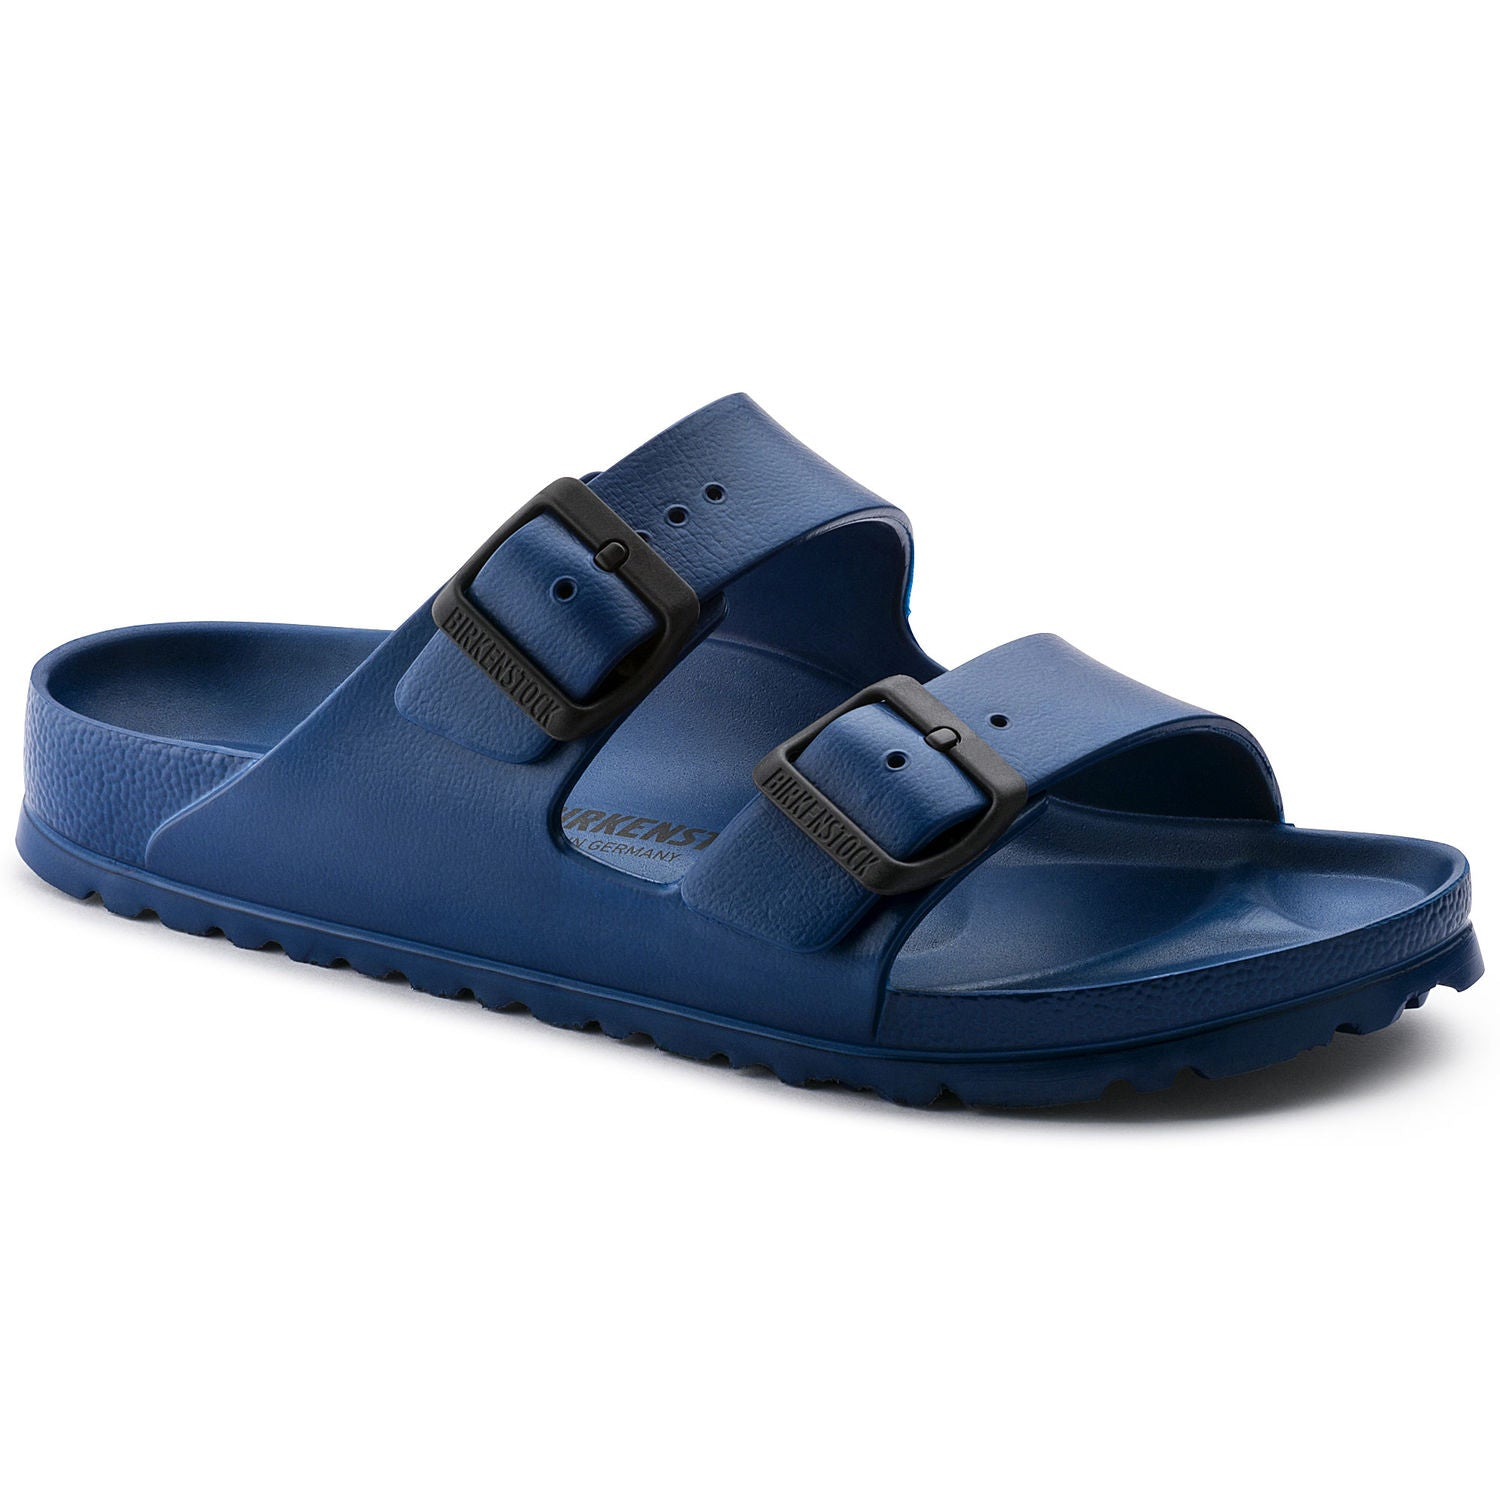 Birkenstock Arizona EVA Sandal in Navy